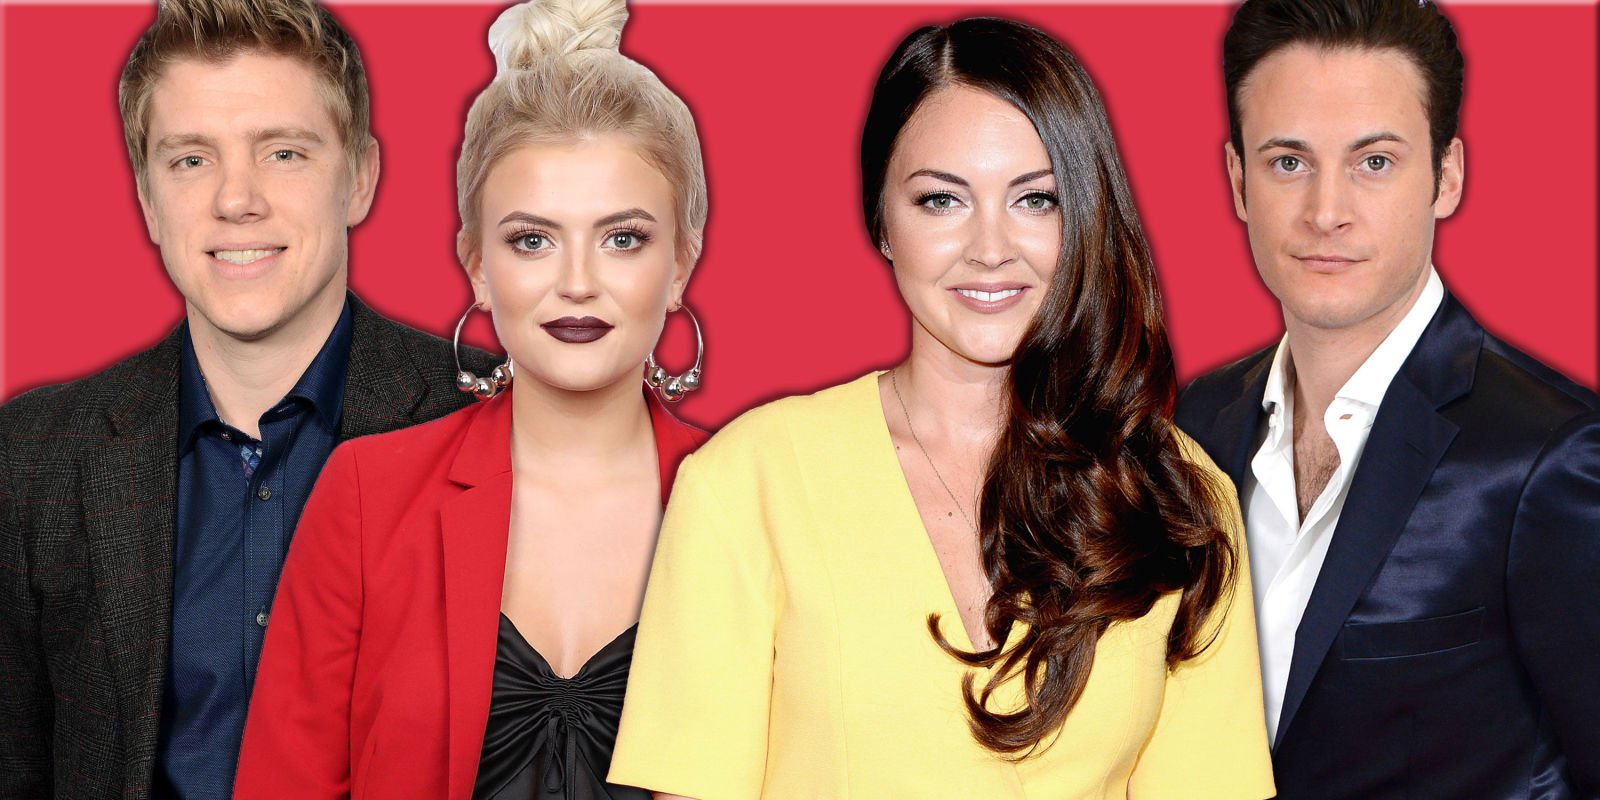 British Soap Awards 2018: Tickets, airdate, nominations and everything else you need to know